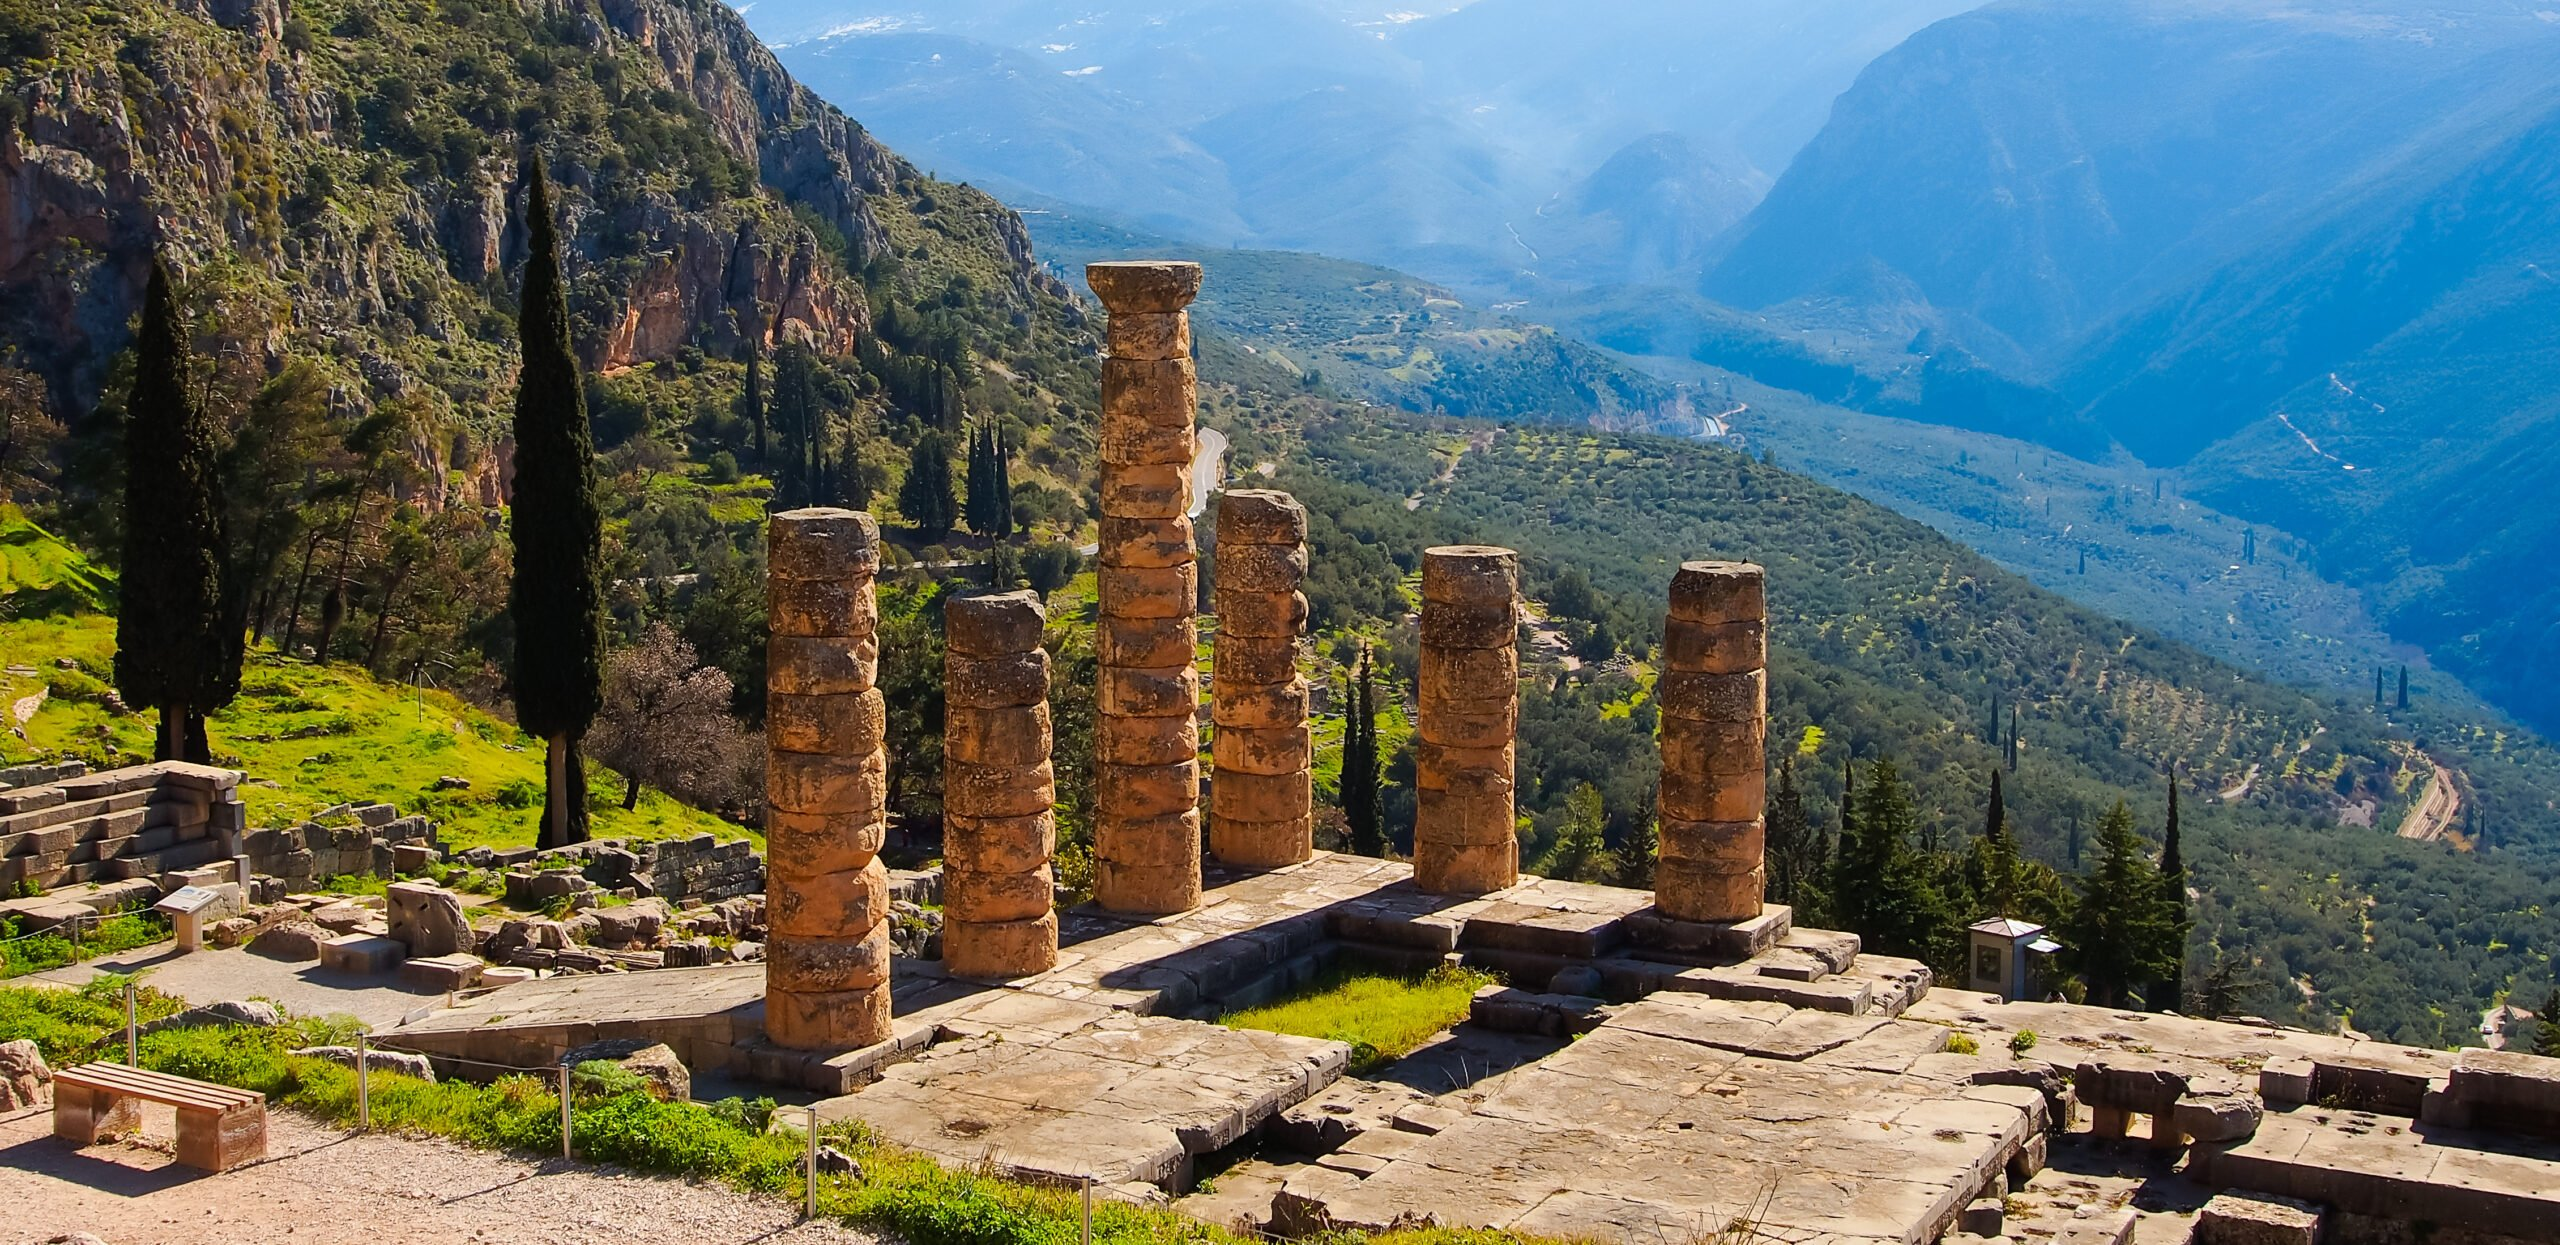 Discover The Ruins Of Delphi On Our 9 Day Secrets Of Ancient Greece Tour Package